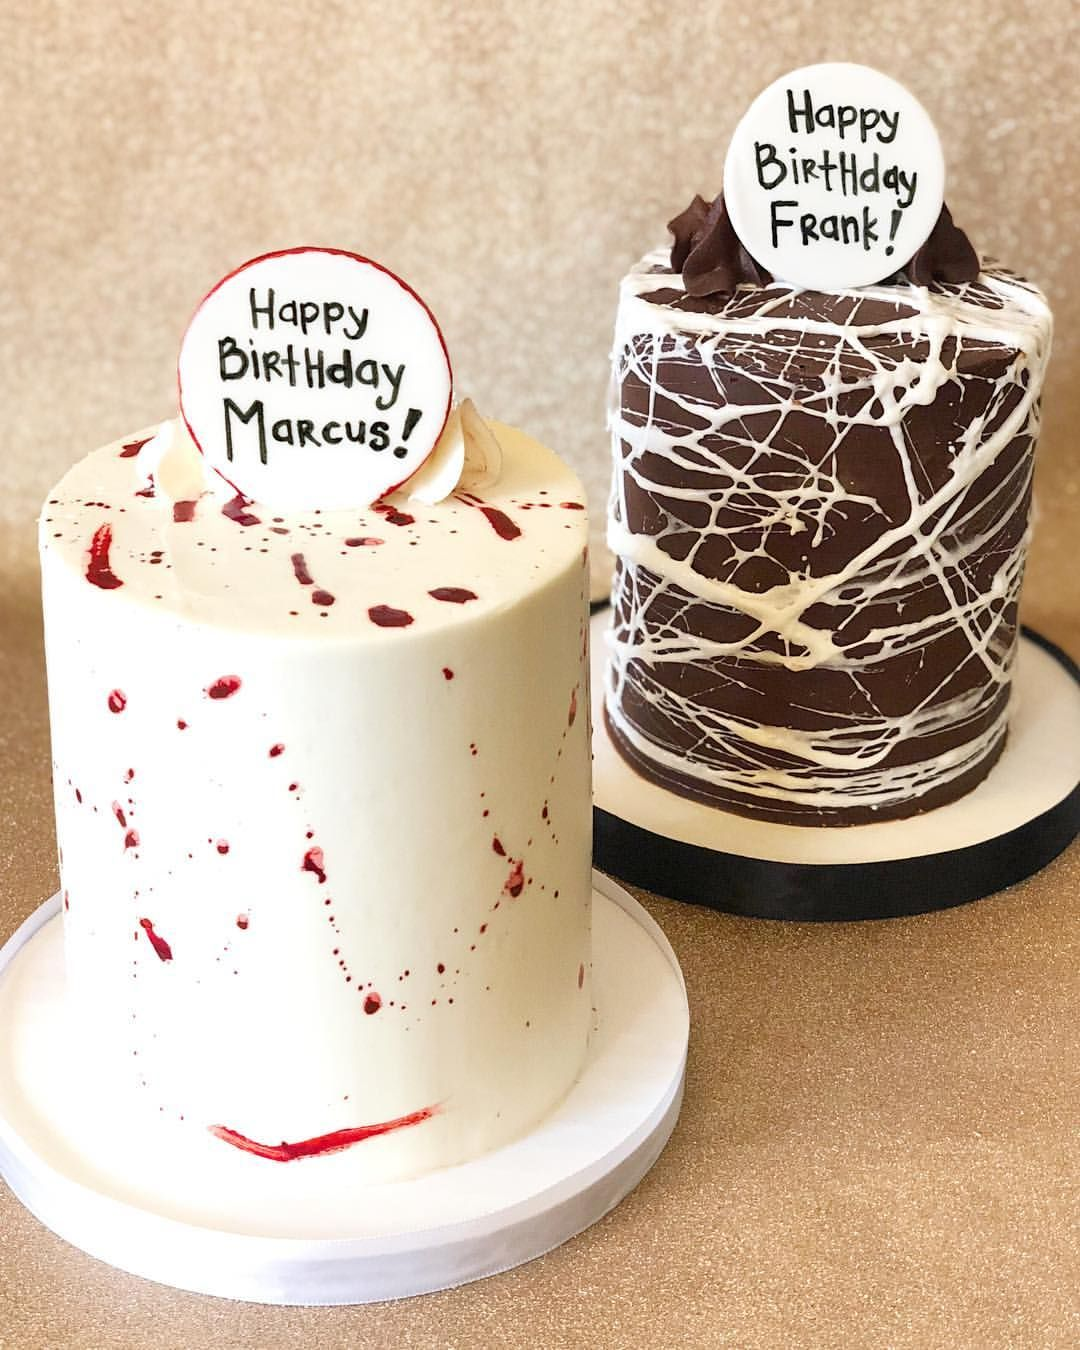 Brilliant Halloween Birthday Cake Mini Birthday Cakes Spooky Season Funny Birthday Cards Online Inifofree Goldxyz